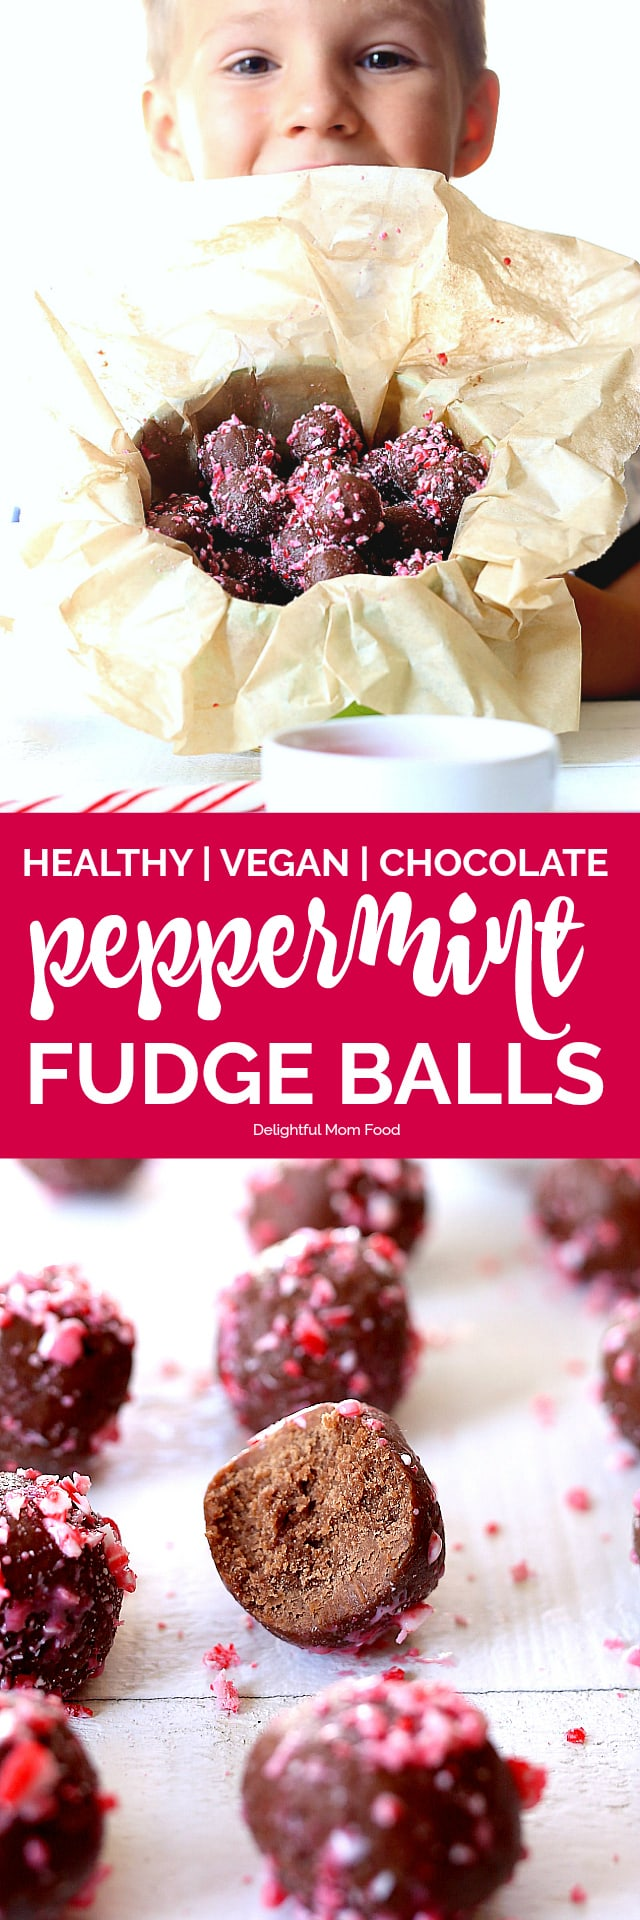 Healthy chocolate fudge balls made raw and coated with crunchy peppermint candy cane pieces. A delicious combination of chocolate cocoa powder, maple syrup, coconut oil, vanilla and gluten-free flour rolled into delicious chewy vegan balls - perfect for the holidays!